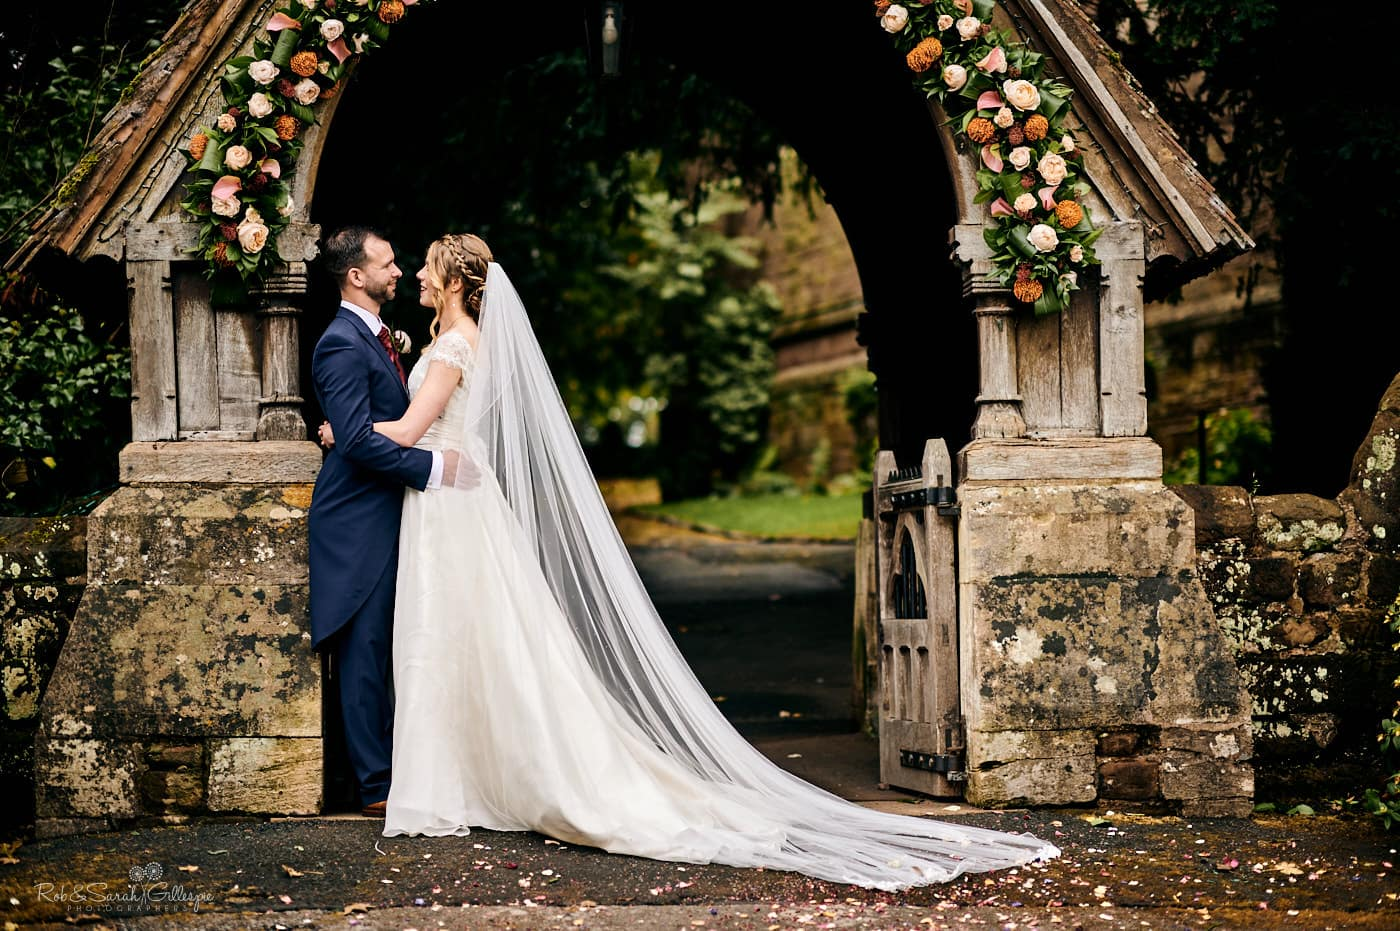 Bride and groom under lychgate at St Peter's church Pedmore